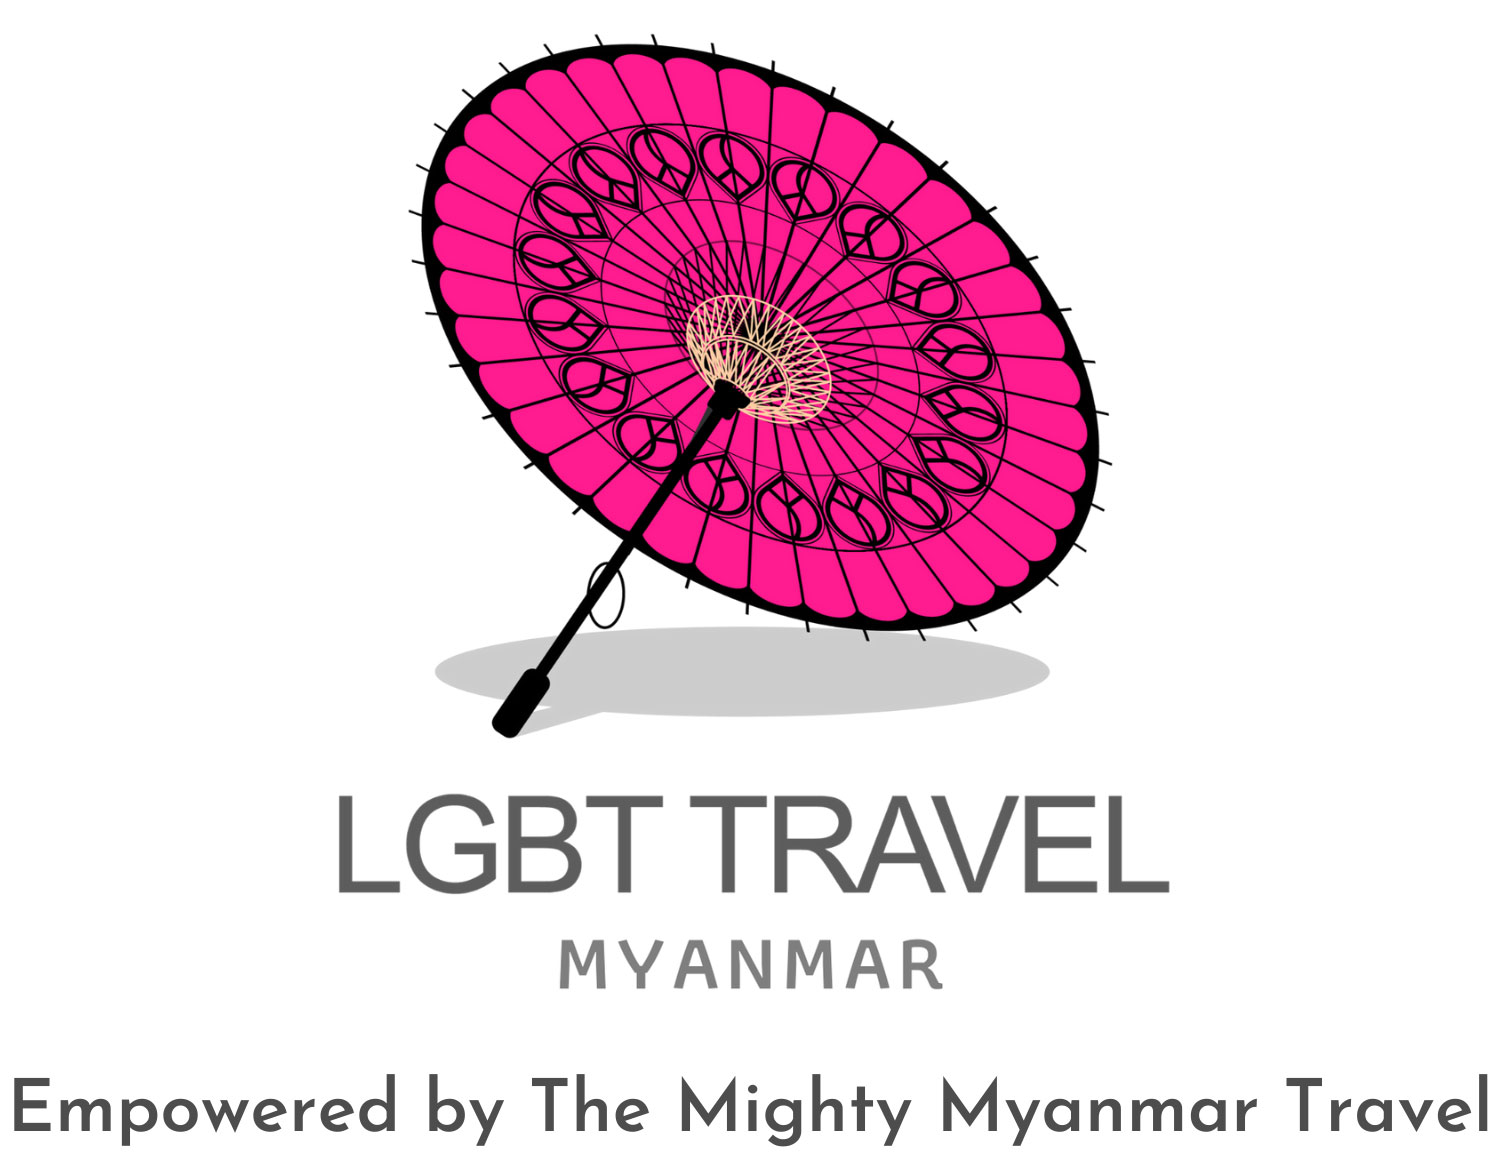 LGBT Travel Company Myanmar | Gay-friendly Travel Myanmar